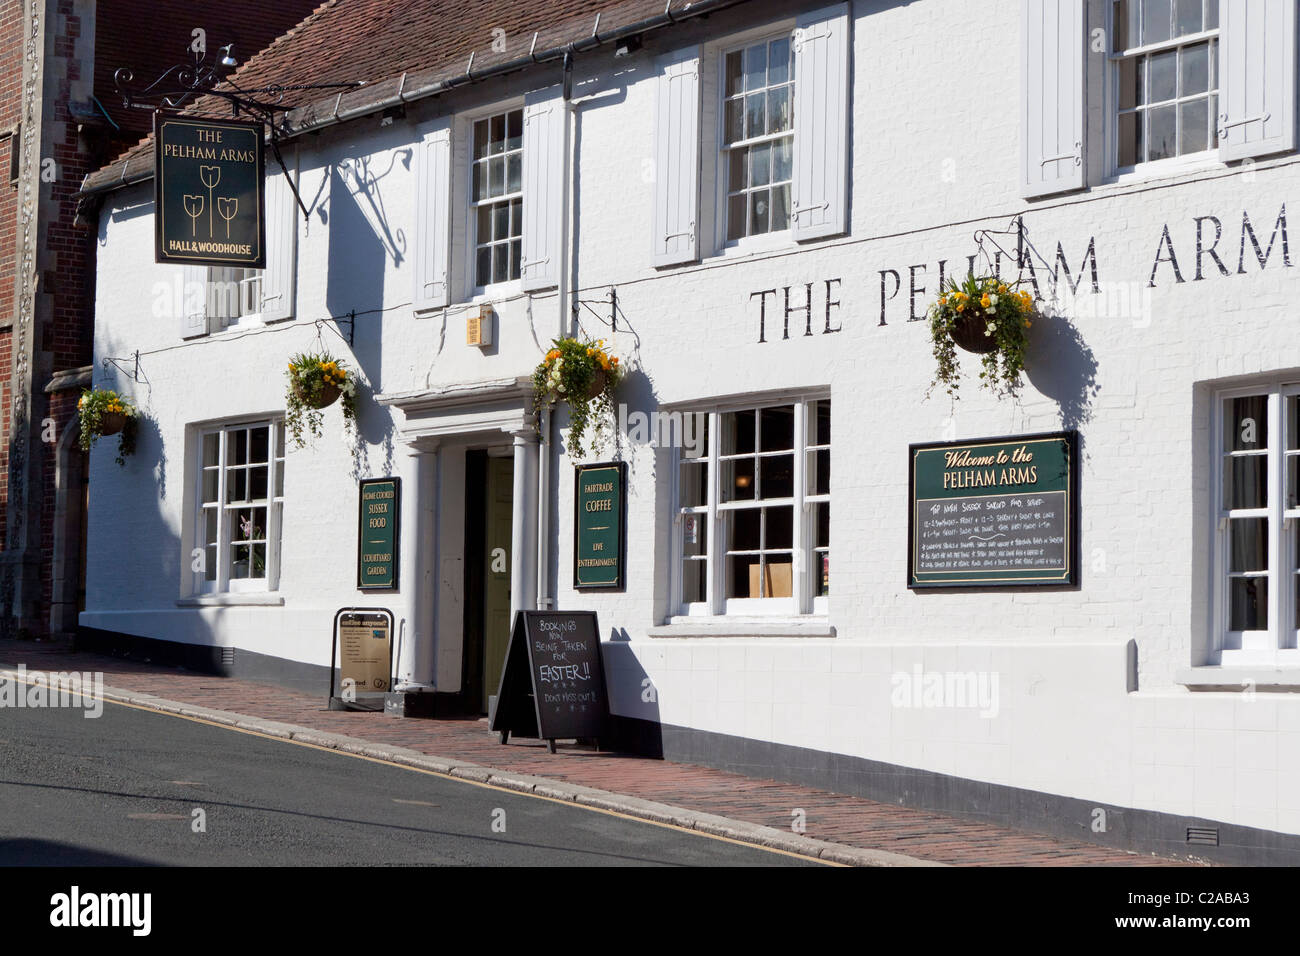 The Pelham Arms - a Hall and Woodhouse pub in Lewes, East Sussex Stock Photo